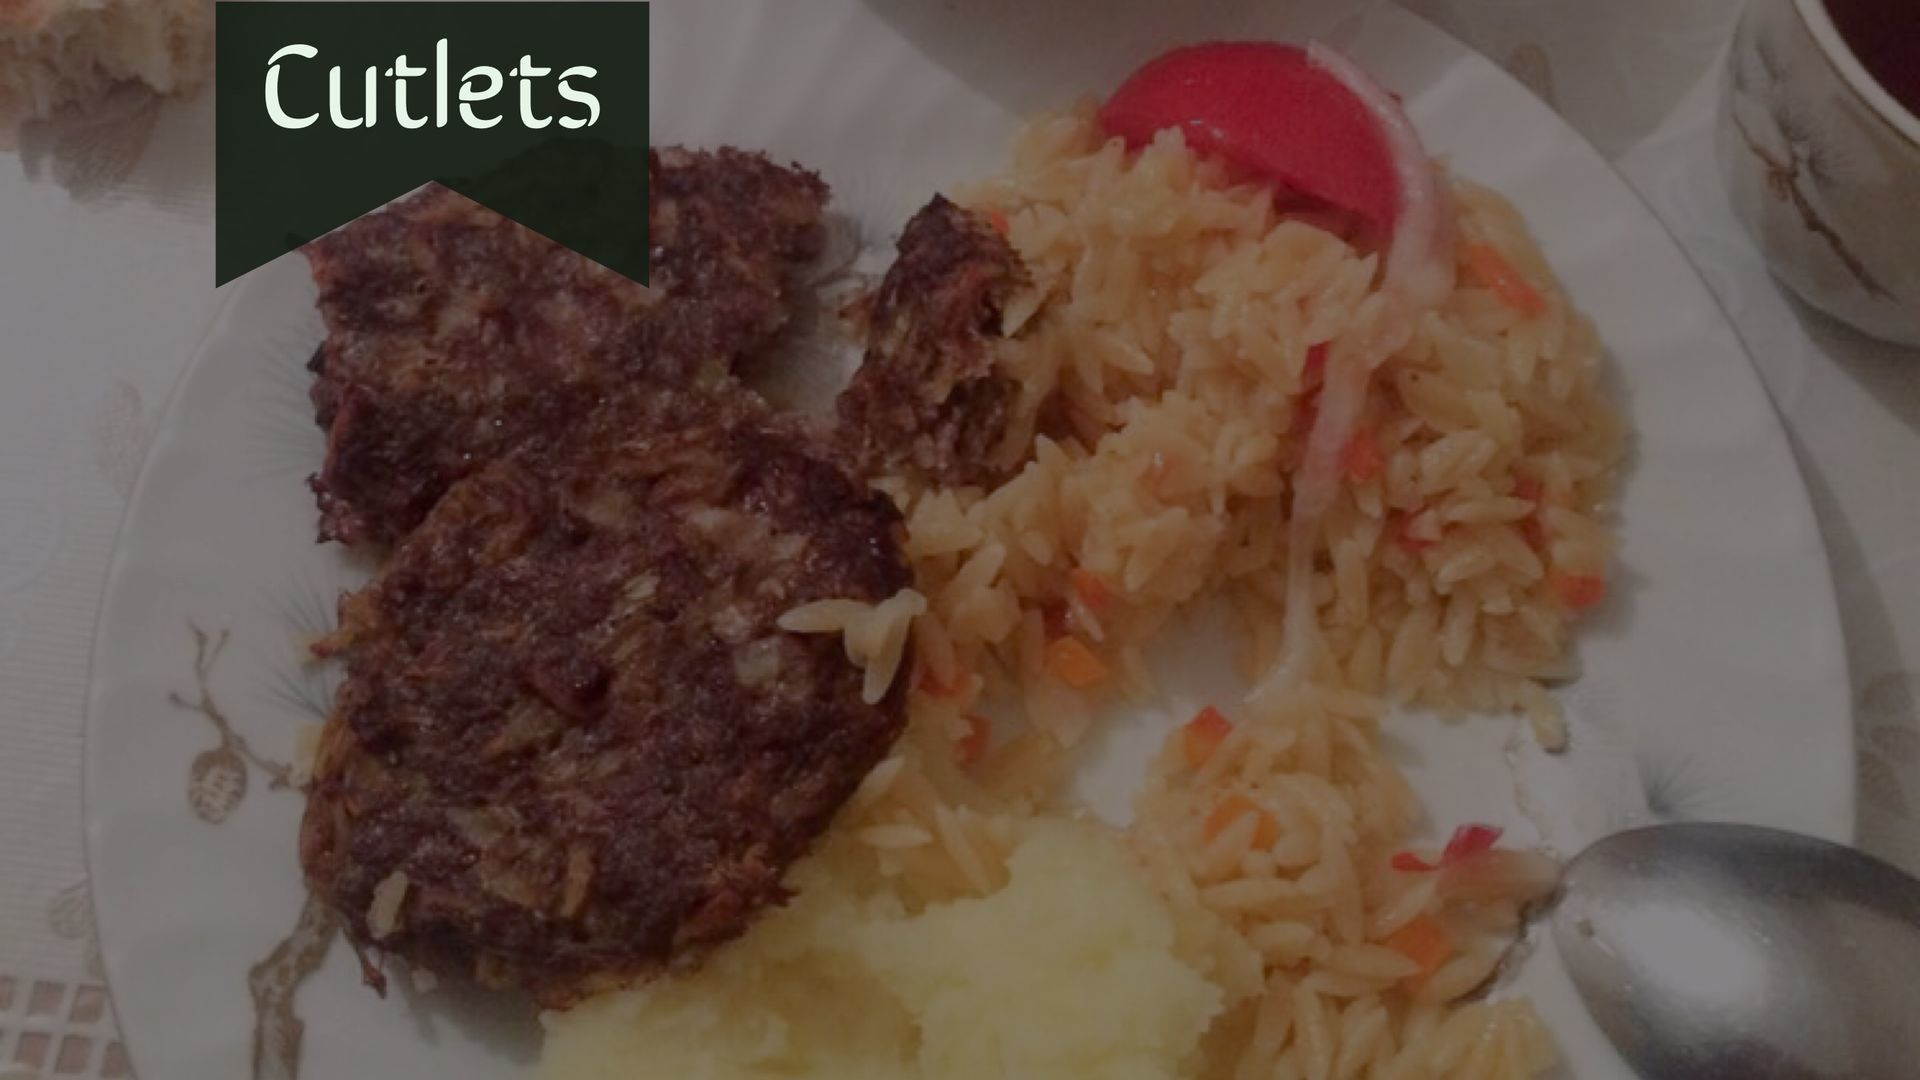 Cutlets with garnish in Central Asia